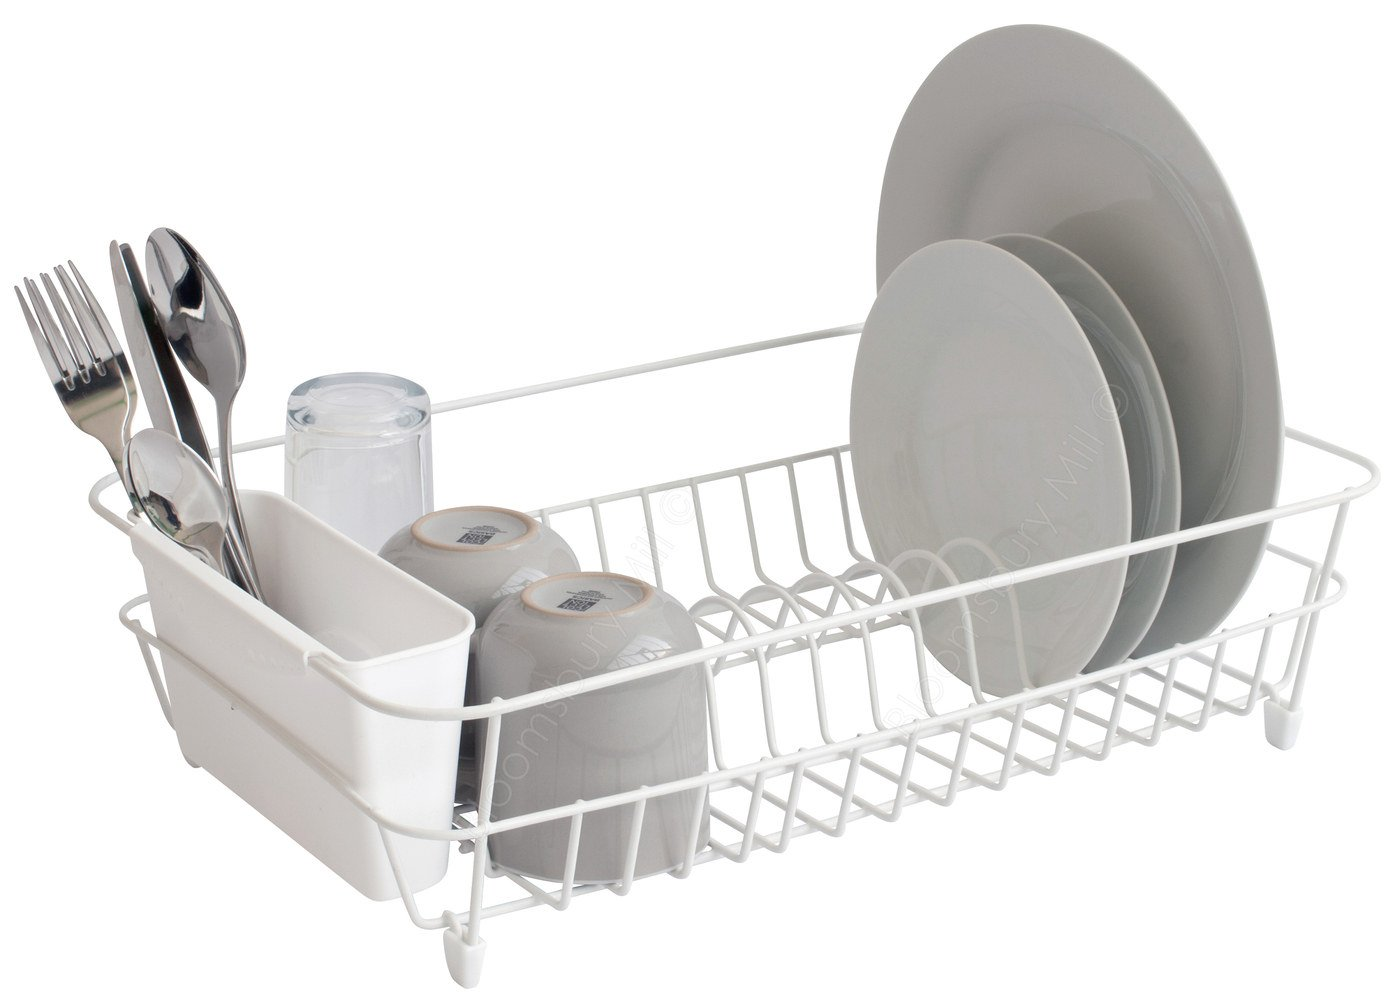 Bloomsbury Mill - White Wire Dish Drainer - Plate Drying Rack with Cutlery Holder Basket - Anti-Rust  sc 1 st  eBay & Bloomsbury Mill - White Wire Dish Drainer Plate Drying Rack with ...